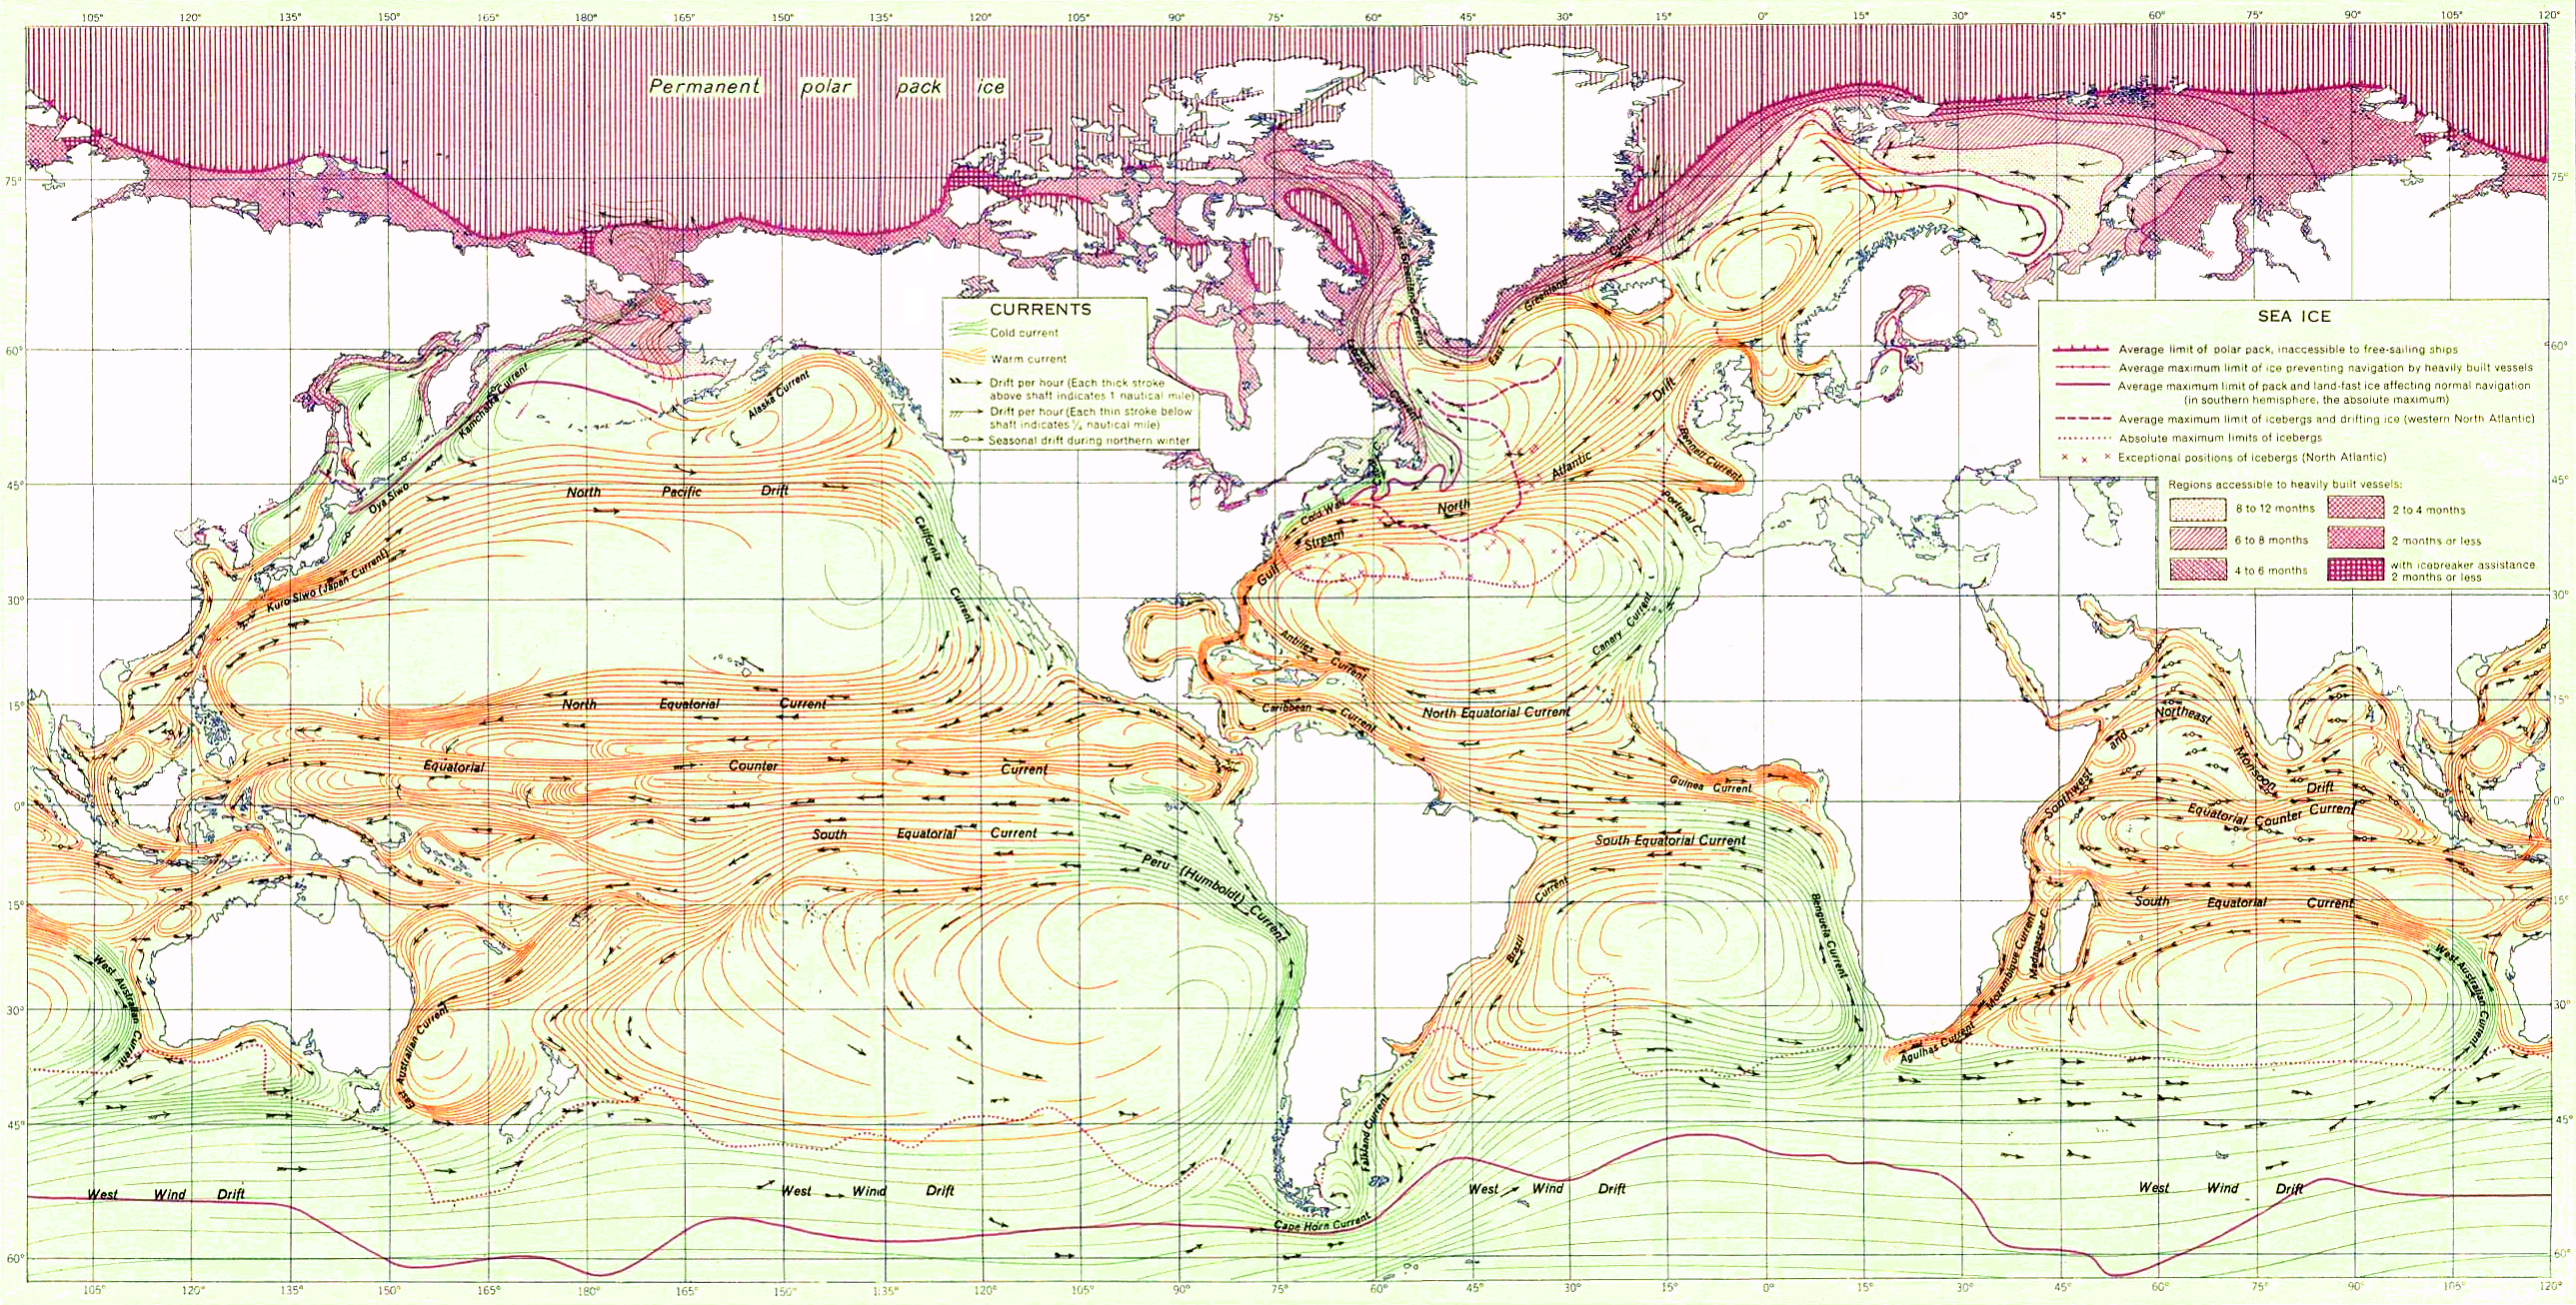 http://upload.wikimedia.org/wikipedia/commons/6/67/Ocean_currents_1943_%28borderless%293.png